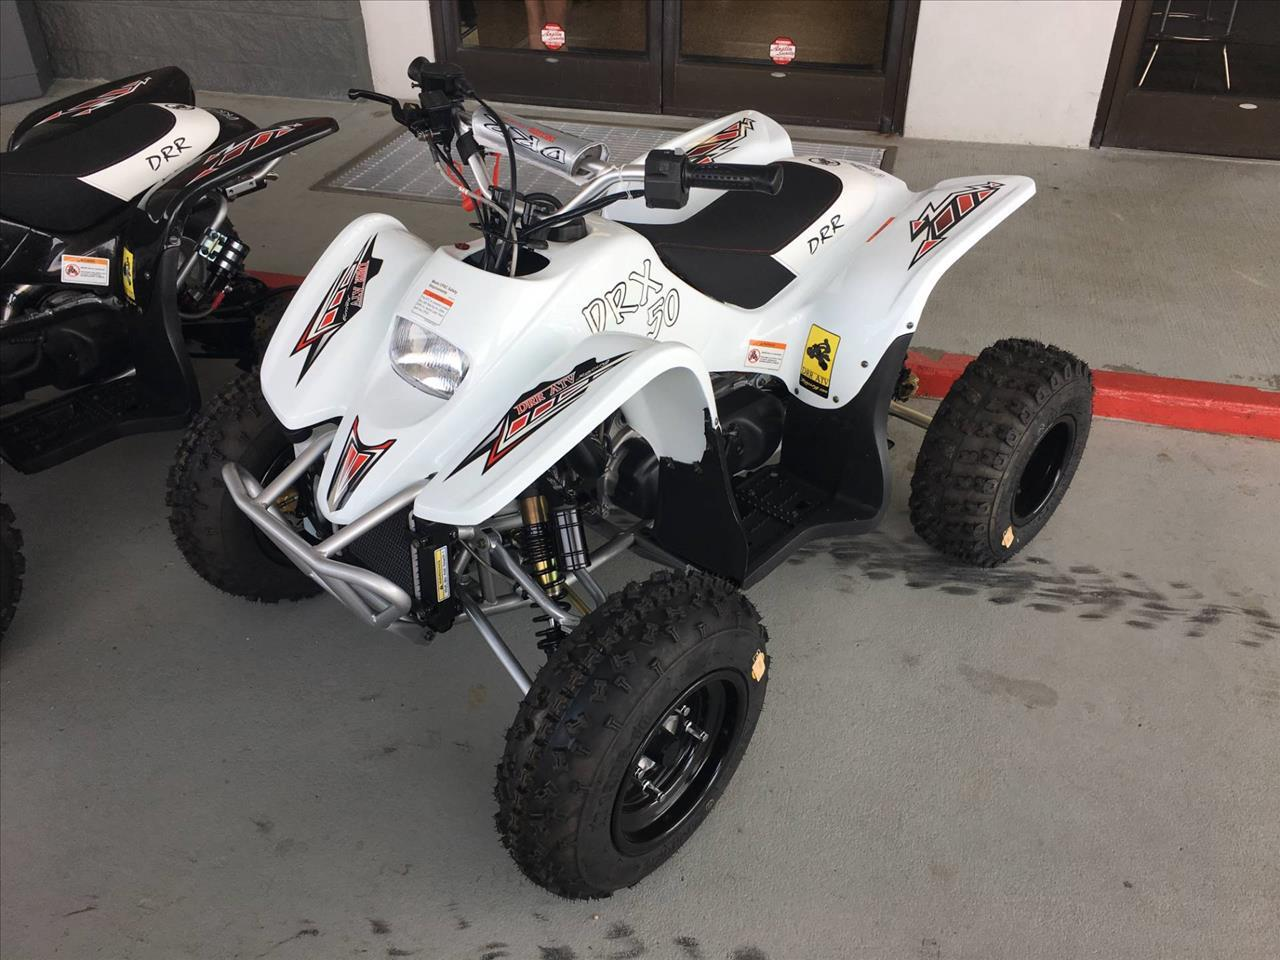 2017 DRR USA DRX 50 for sale at Vehicle Network, LLC - Performance East, INC. in Goldsboro NC